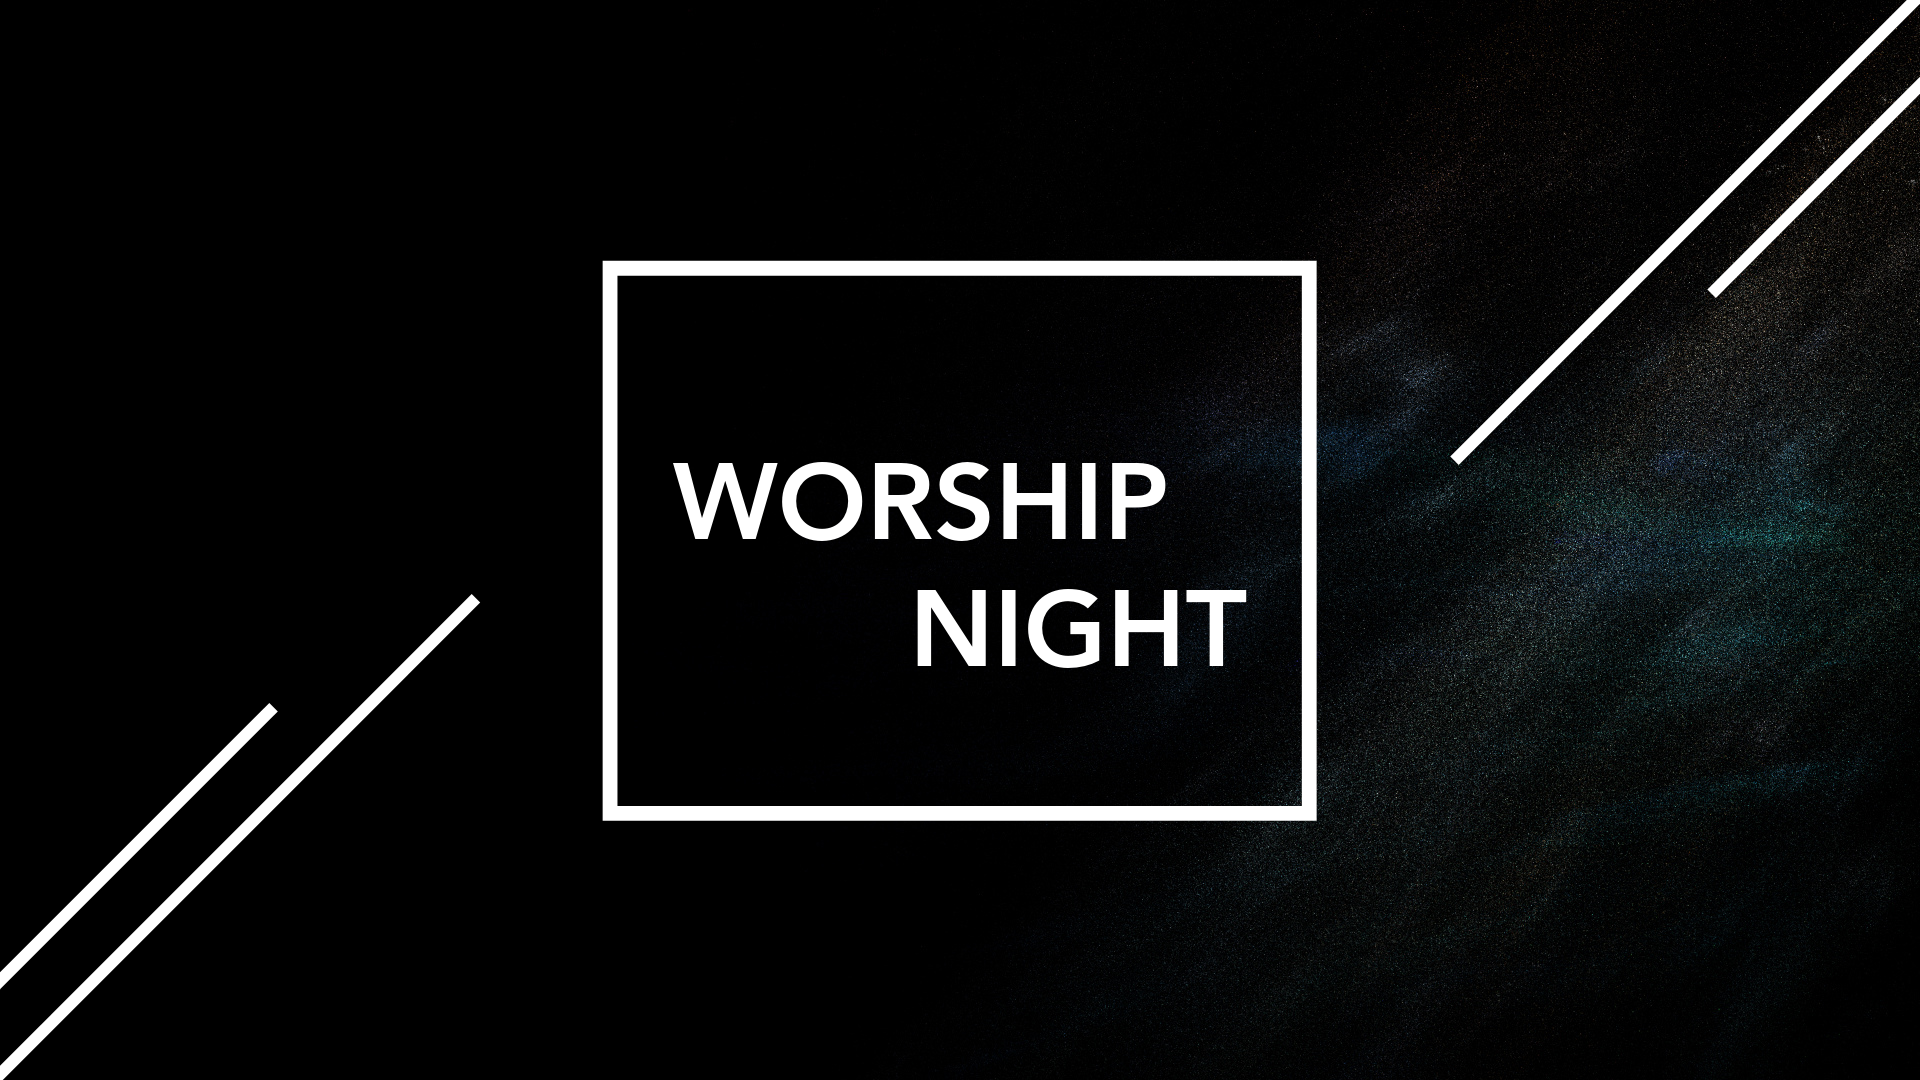 Worship_Night_Placeholder image